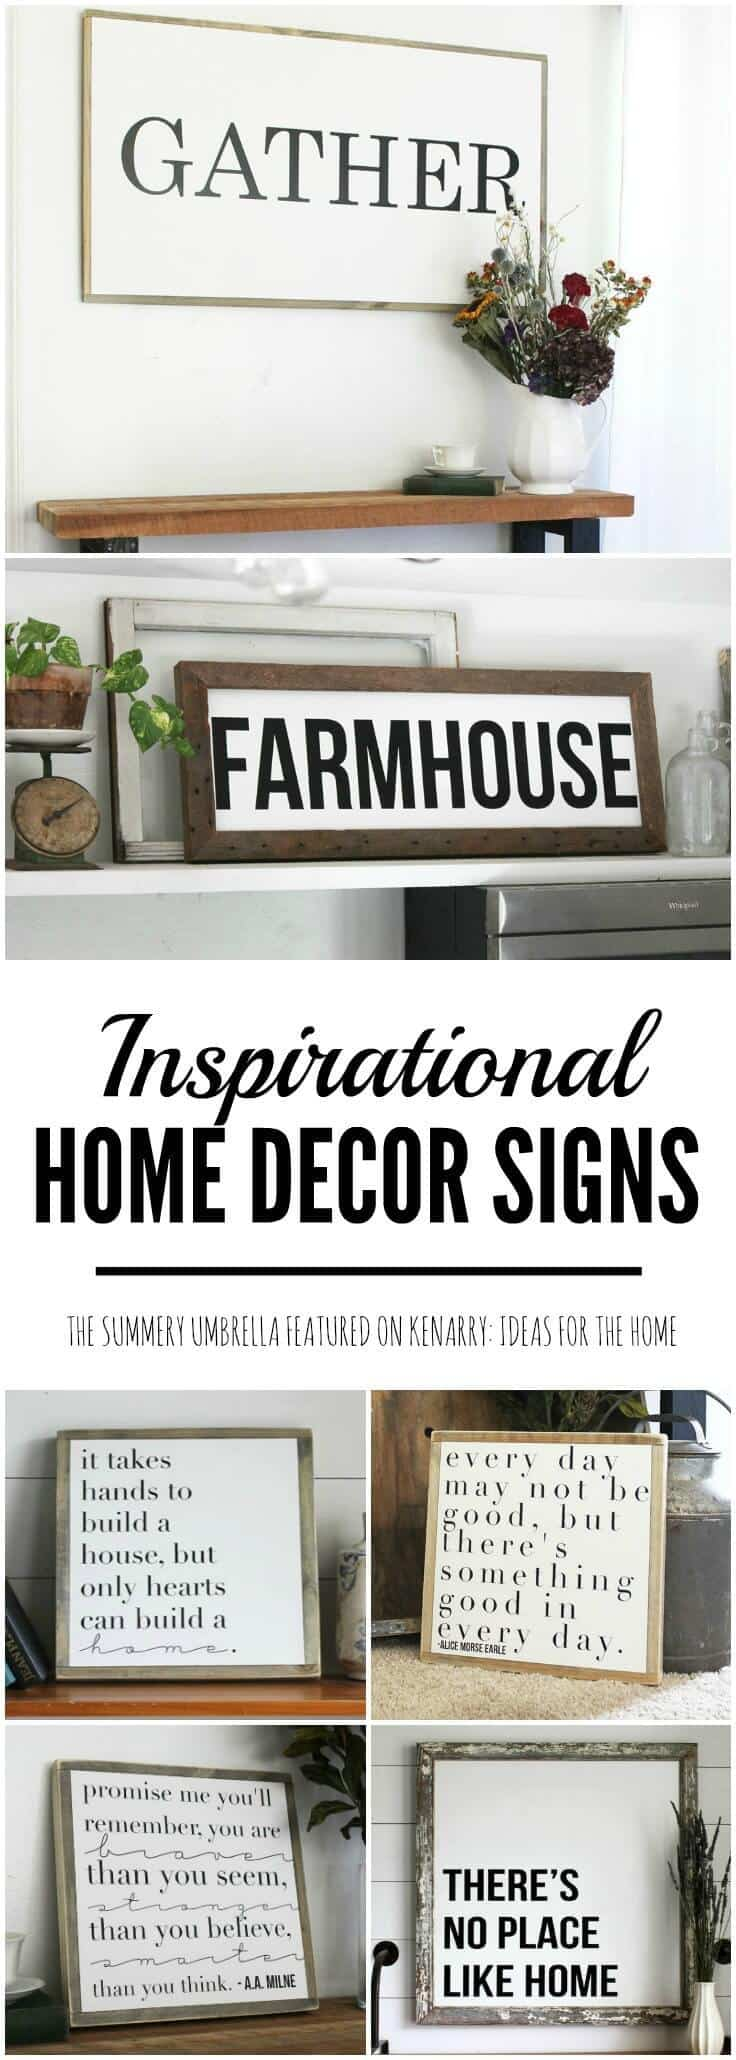 Beautiful Inspirational Home Decor Signs From The Summery Umbrella Which Offers Rustic With A